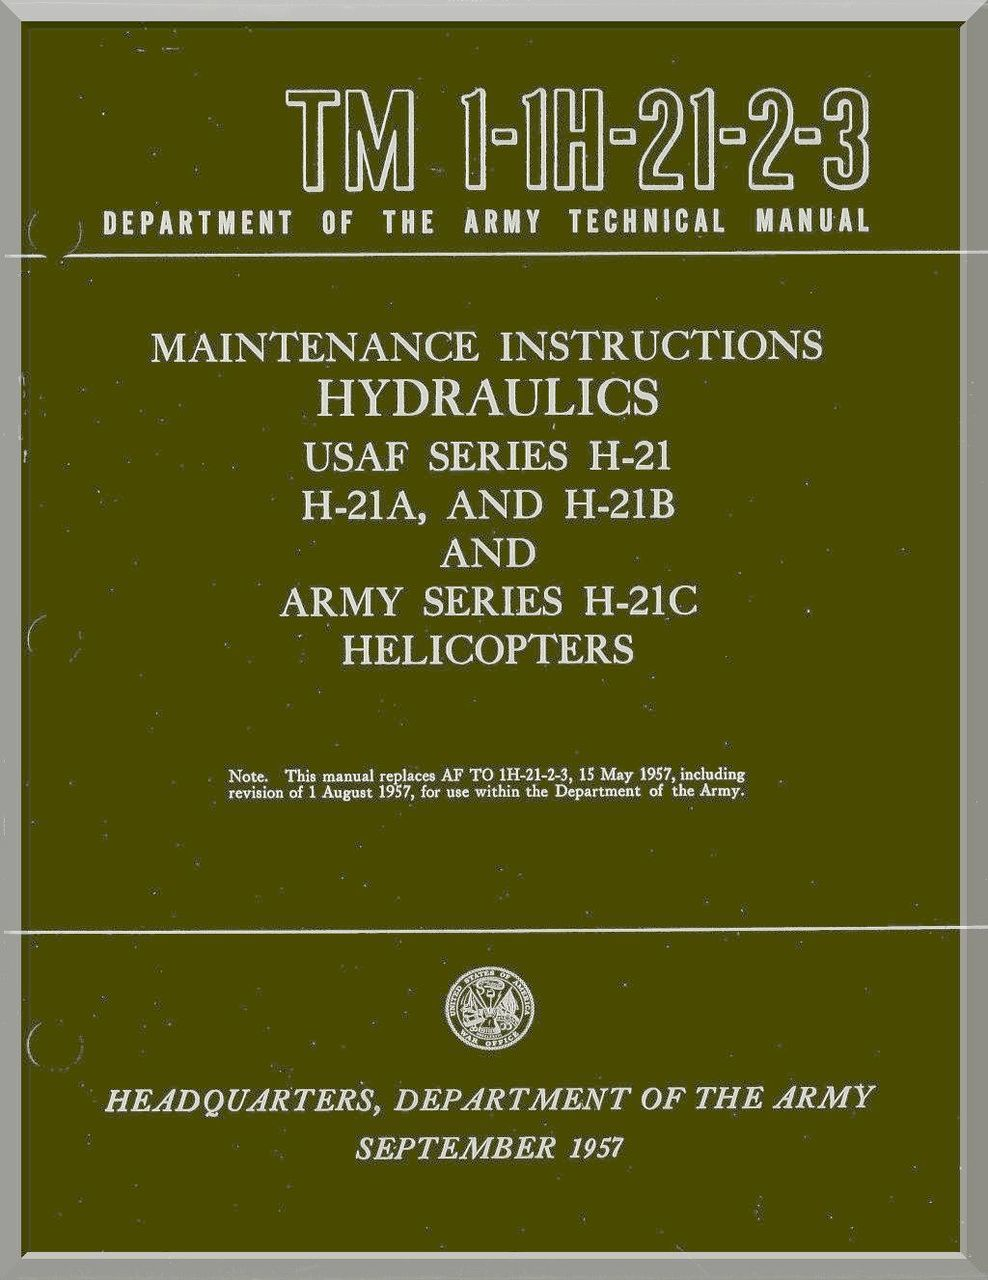 Piasecki H-21 A B C Helicopter Maintenance Instructions Hydraulics and  Powerplant Manual - TM 01-1H-21-2-3 and TM 01-1H-21-2-4 , 1957 - - Aircraft  Reports ...